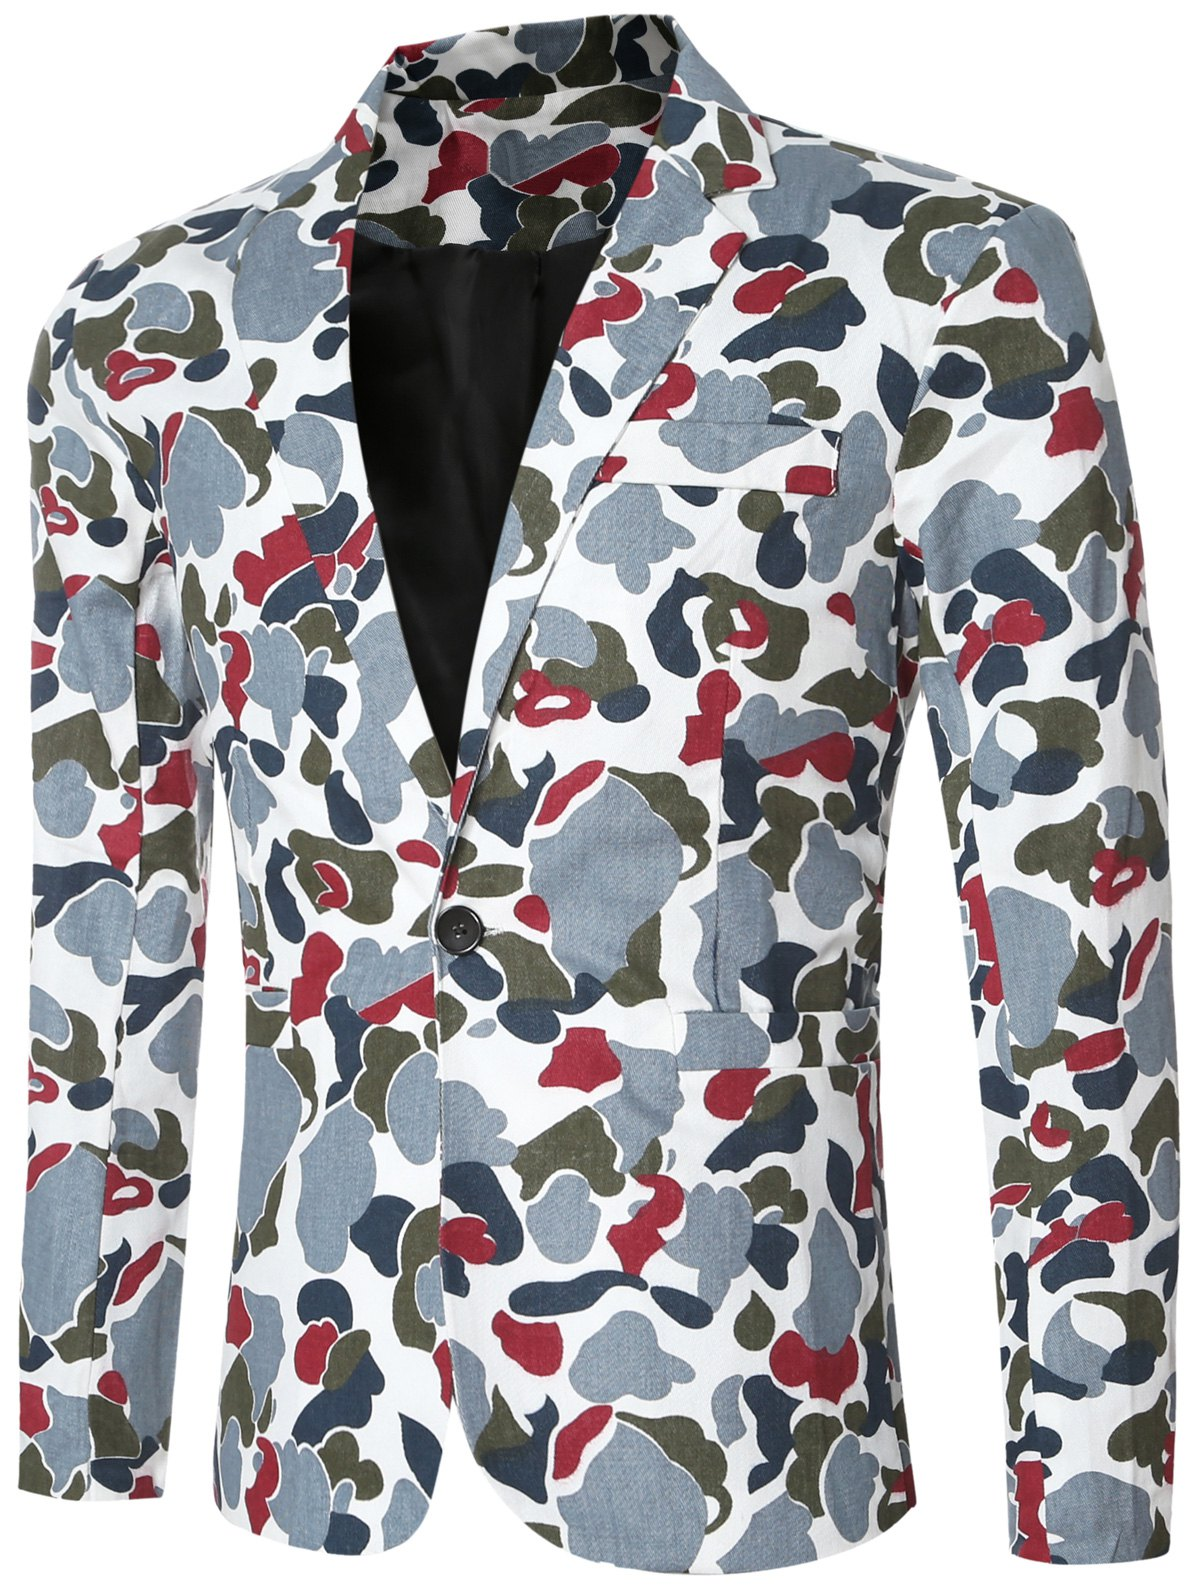 Single Button Opening Notched Lapel Collar Camo Bomber Blazer For Men natali kovaltseva настенно потолочный светильник natali kovaltseva 74021 1s 40459